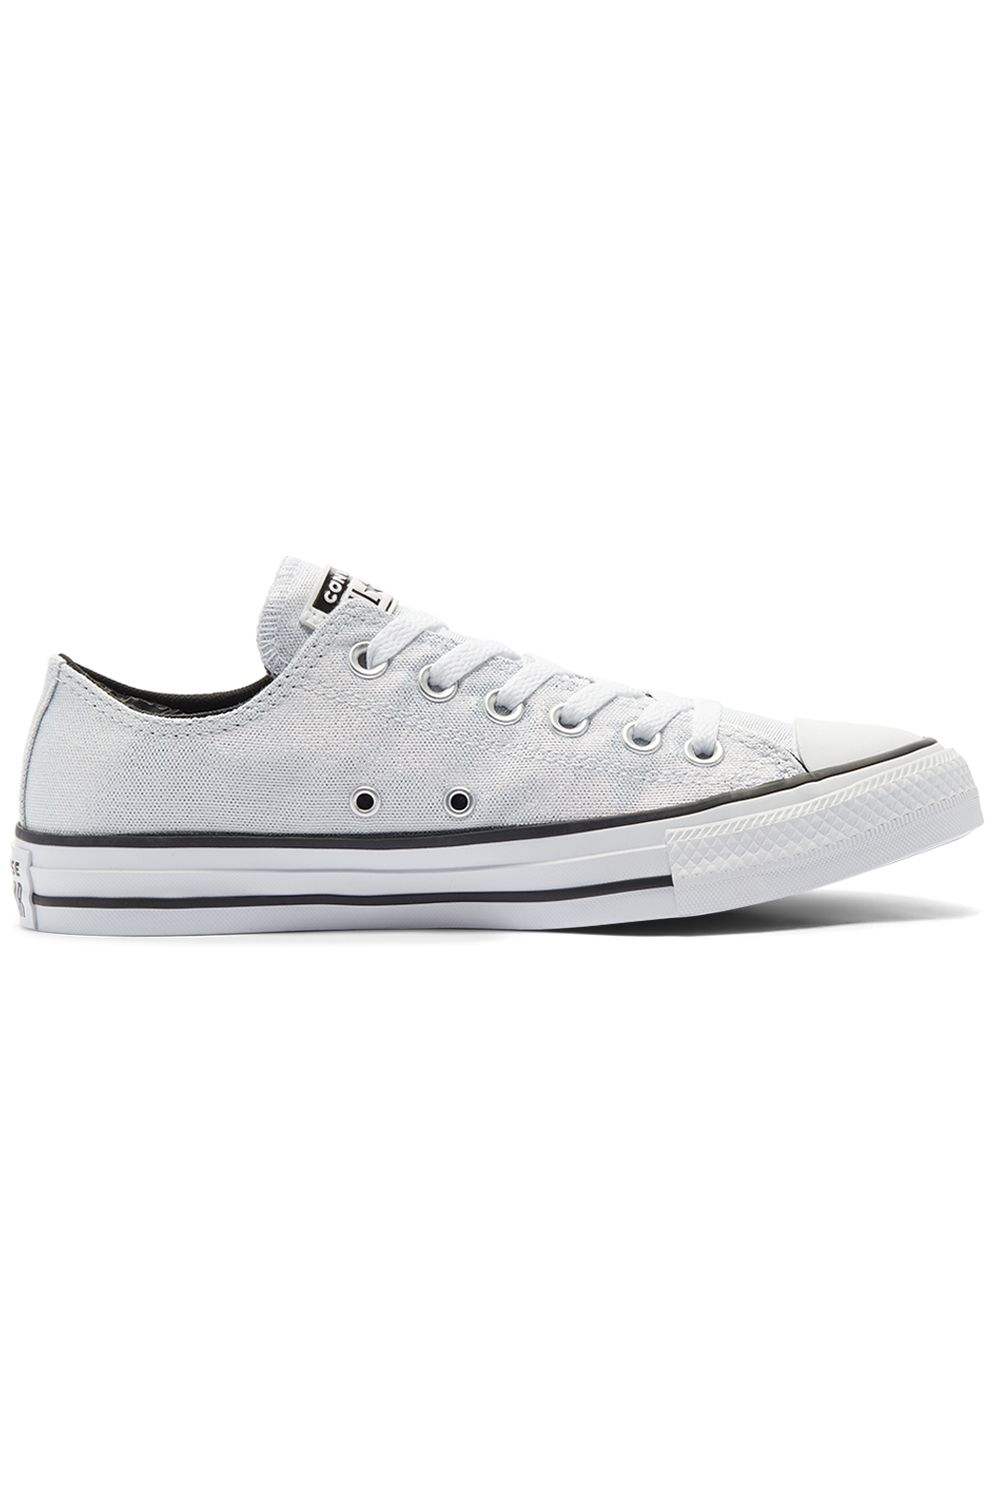 Tenis Converse CHUCK TAYLOR ALL STAR OX Silver/Black/White